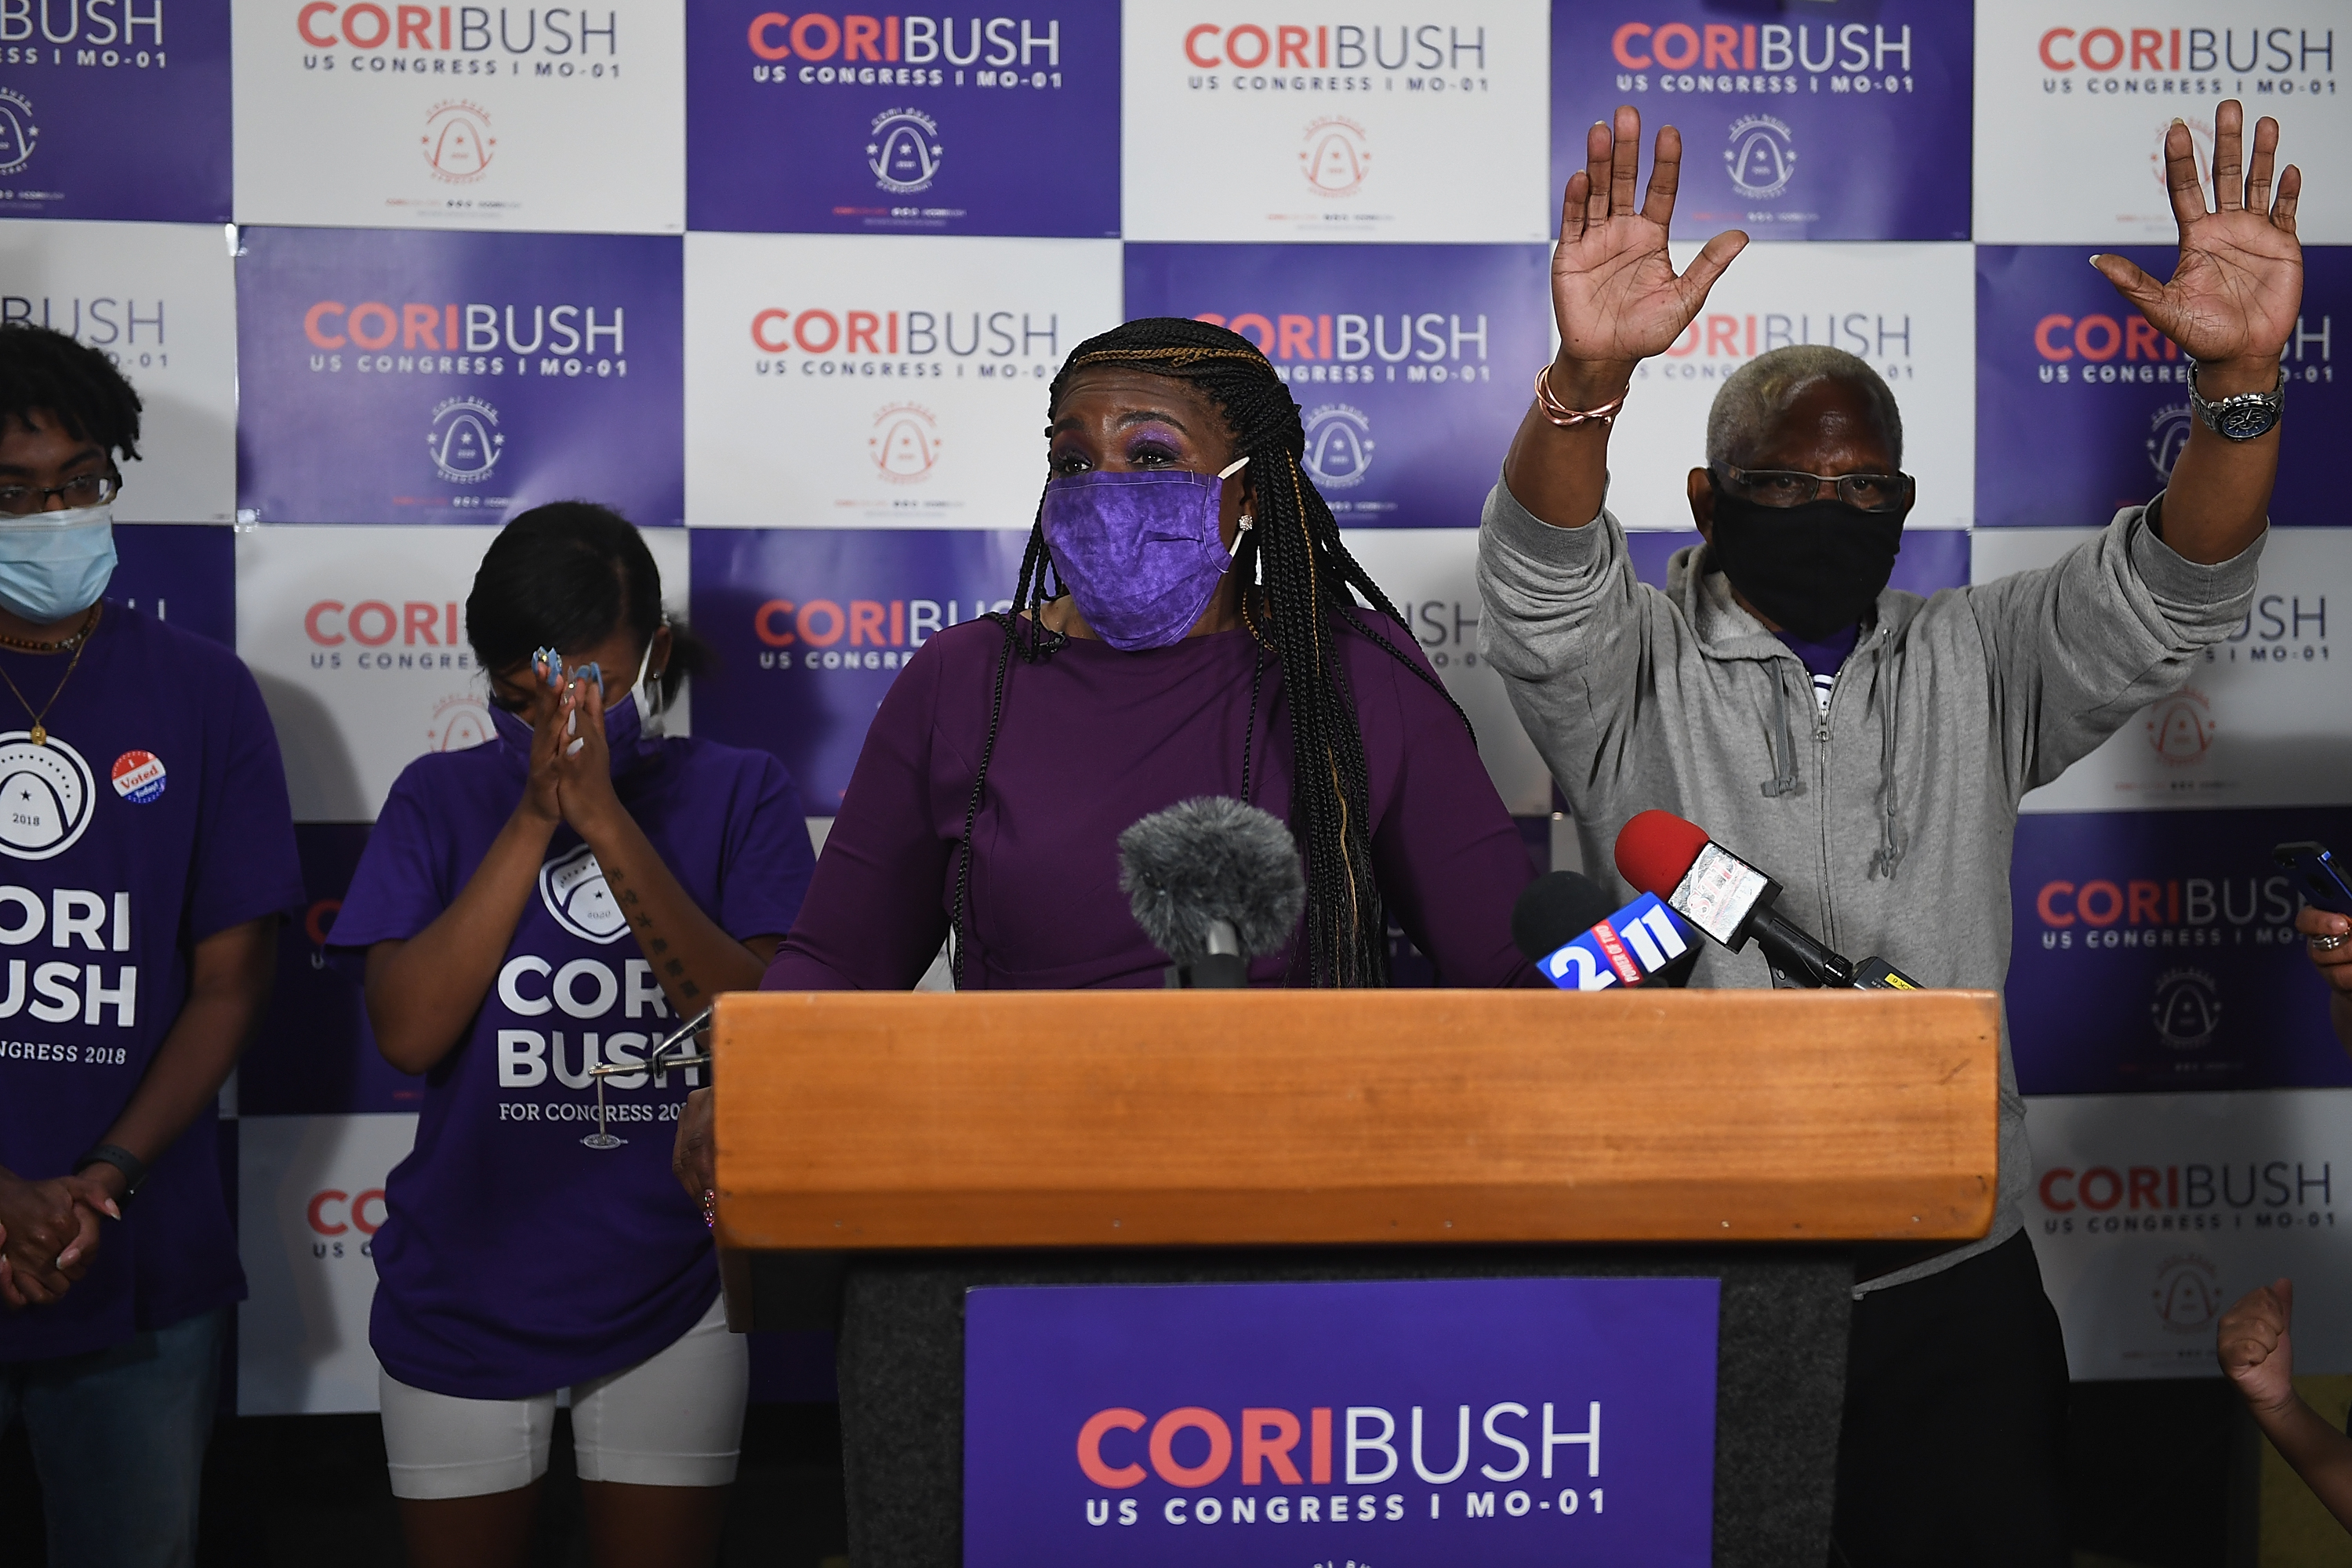 Congressional candidate Cori Bush wears a mask while giving a speech from behind a podium. Campaign supporters stand behind and to the sides.